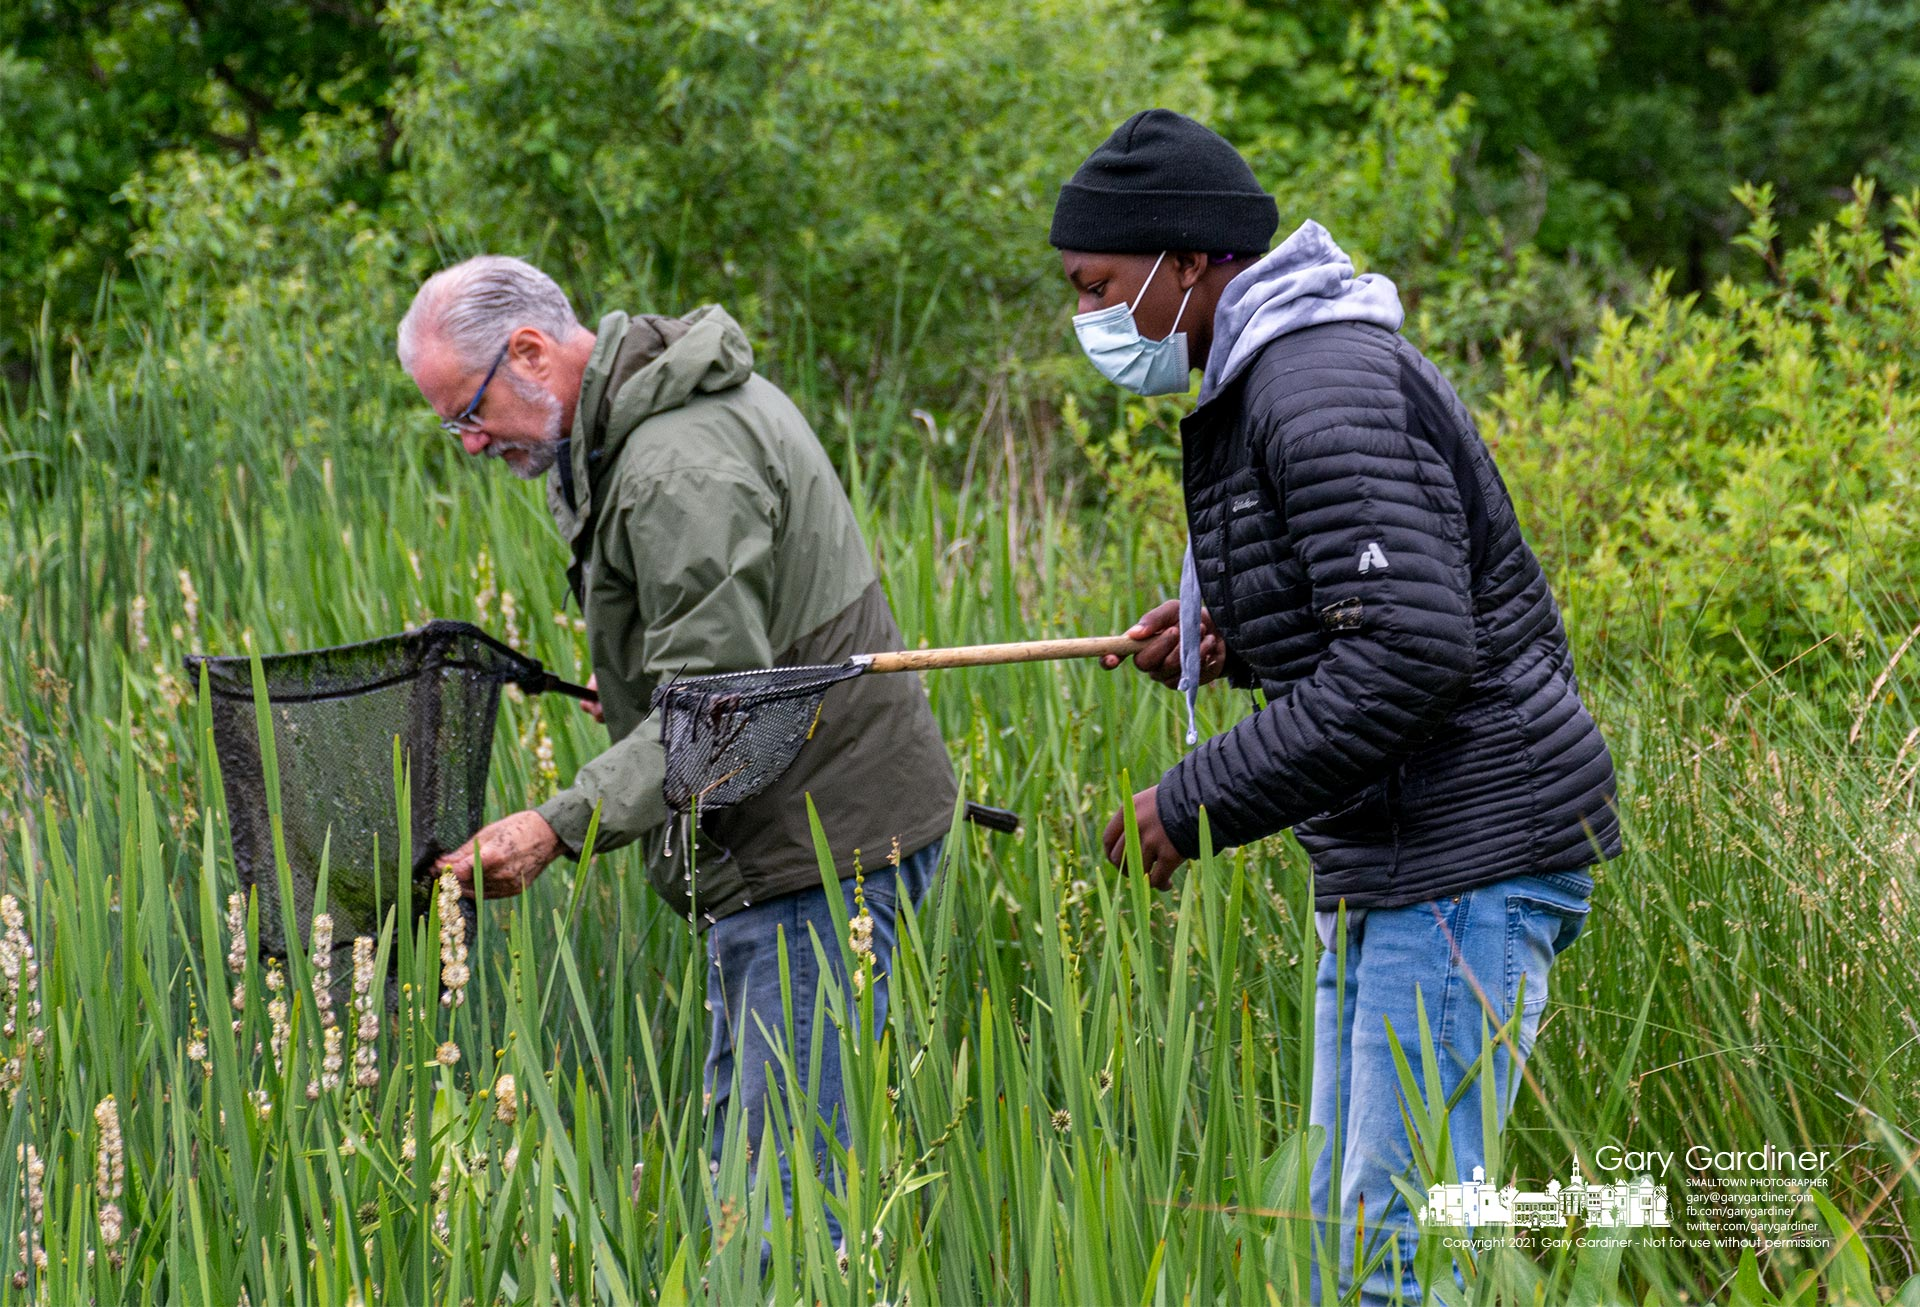 MAD Scientist's Mark Dilley, left, helps a young explorer discover the amphibian and fishes of the Highland Wetlands during the annual Wetland Workshop Saturday morning. My Final Photo for May 29, 2021.